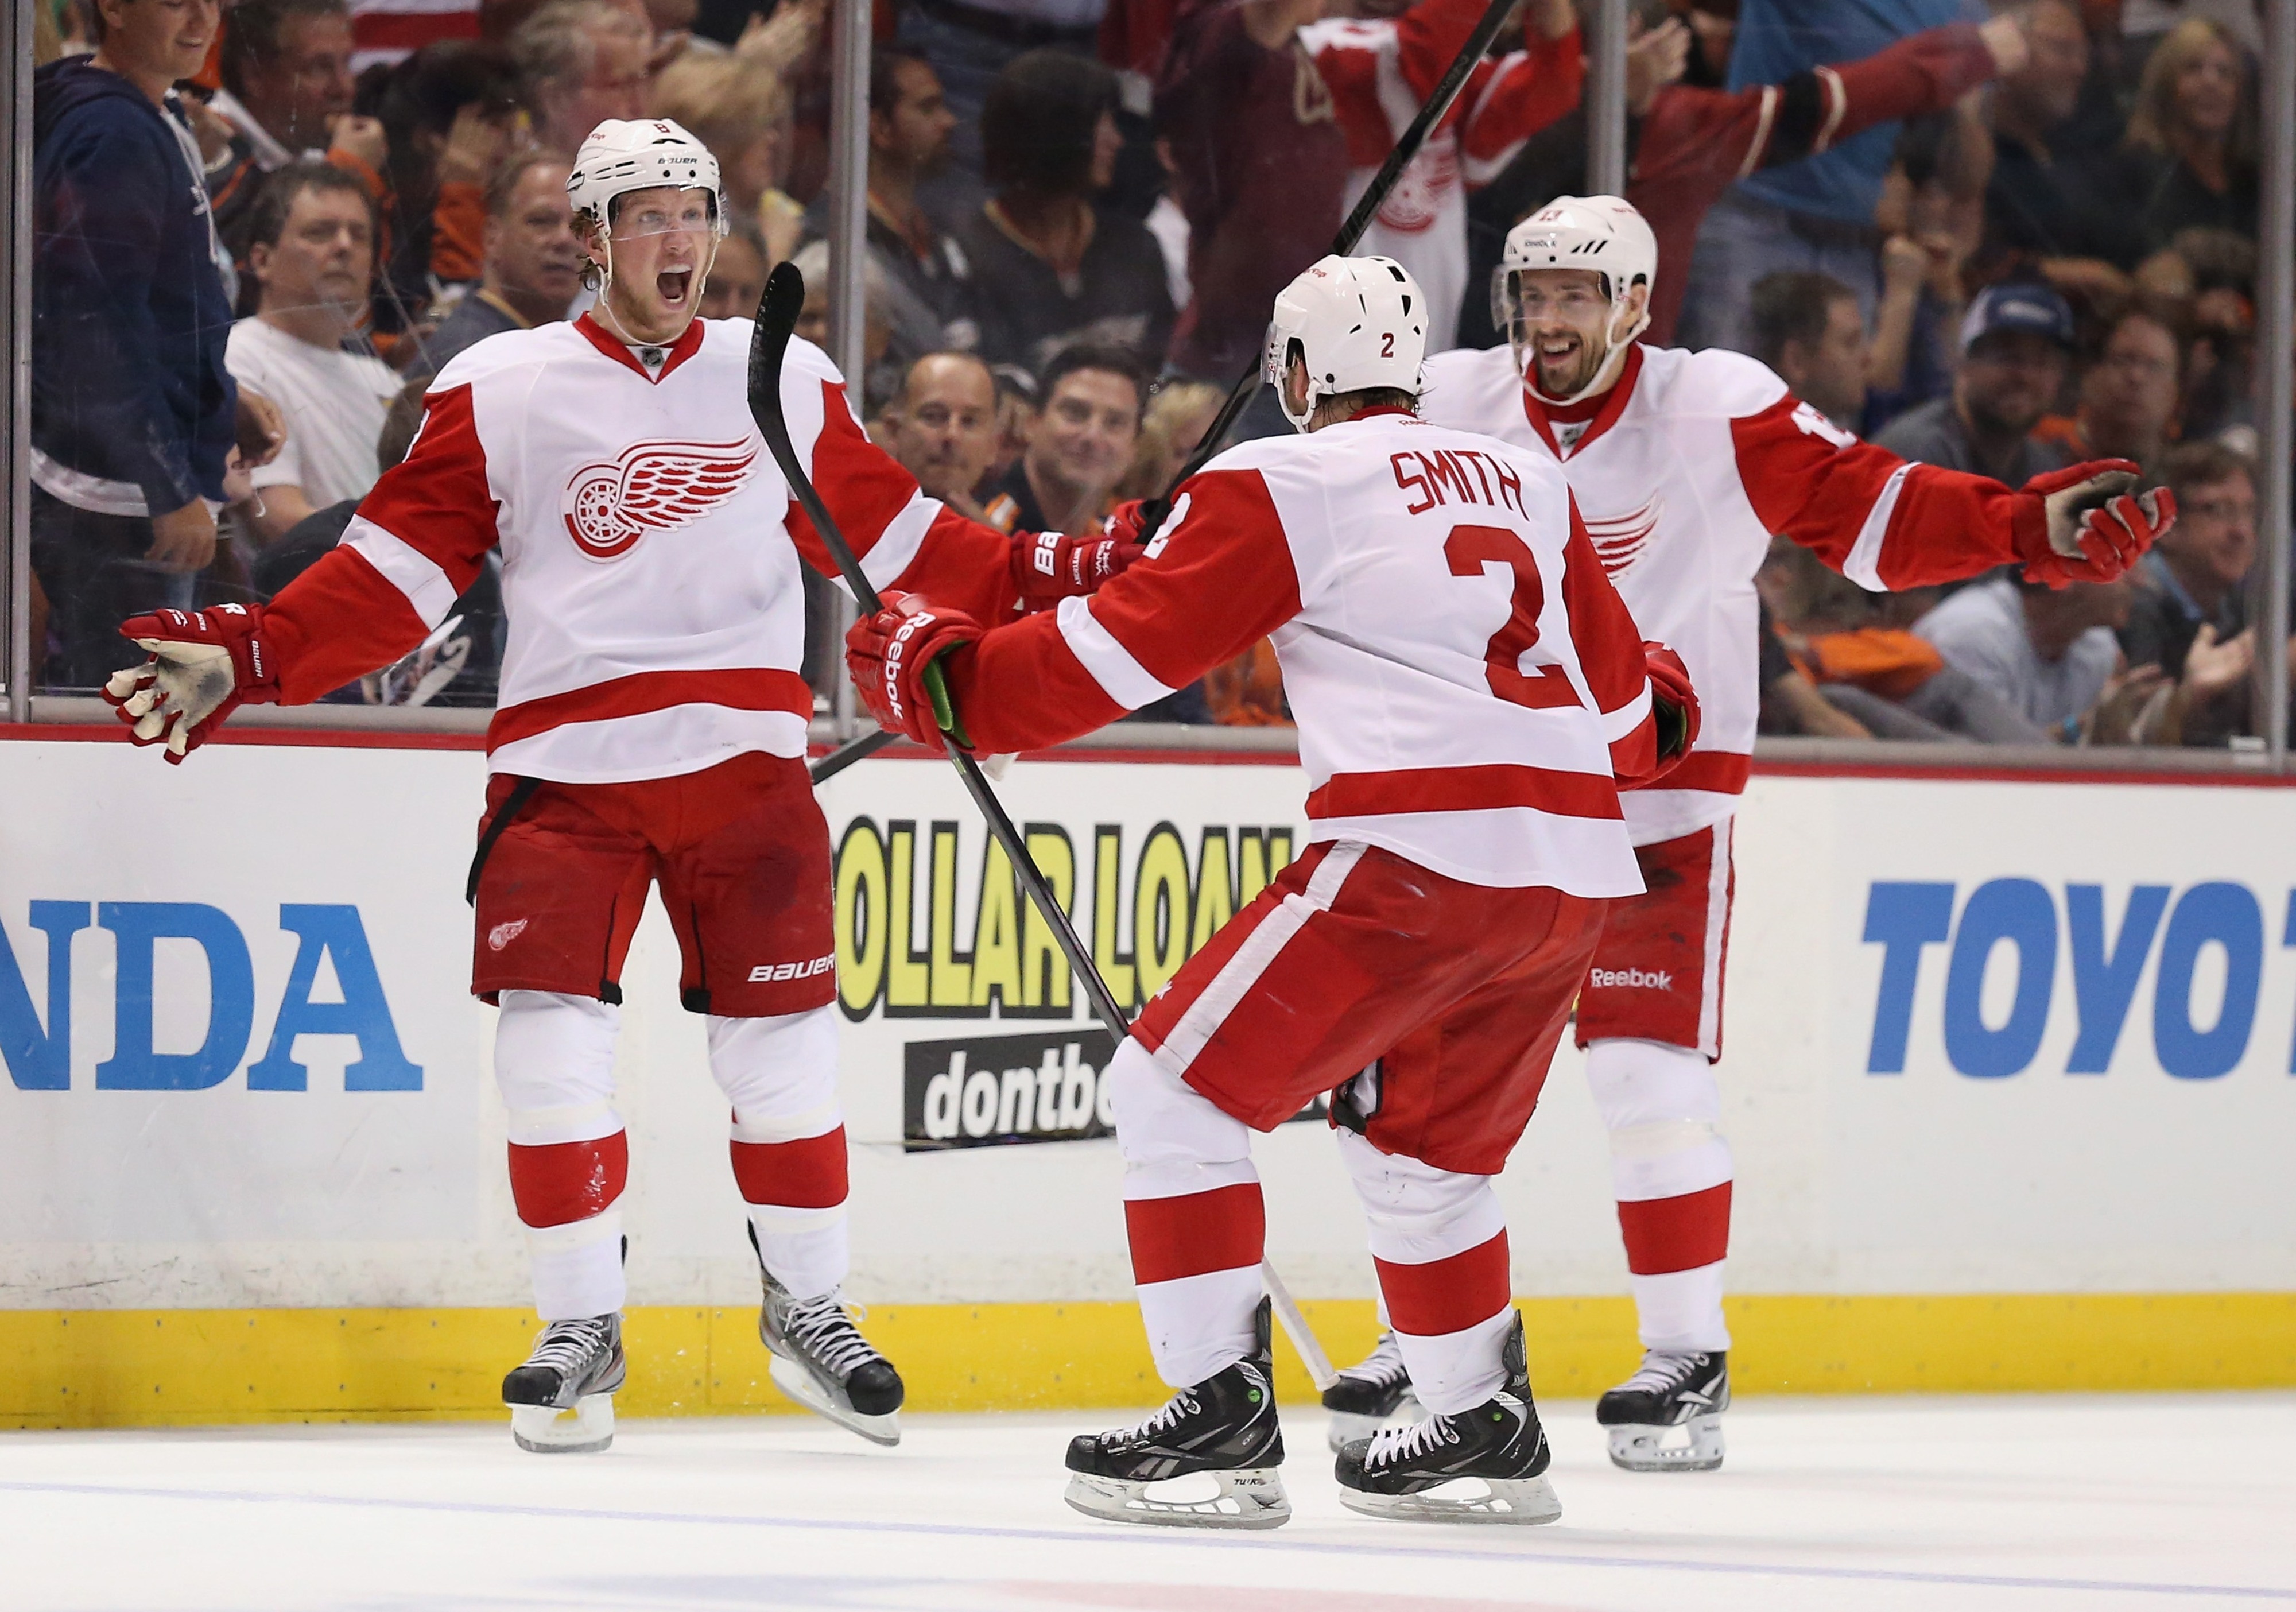 Datsyuk is reffing and I think he just called Brendan Smith safe